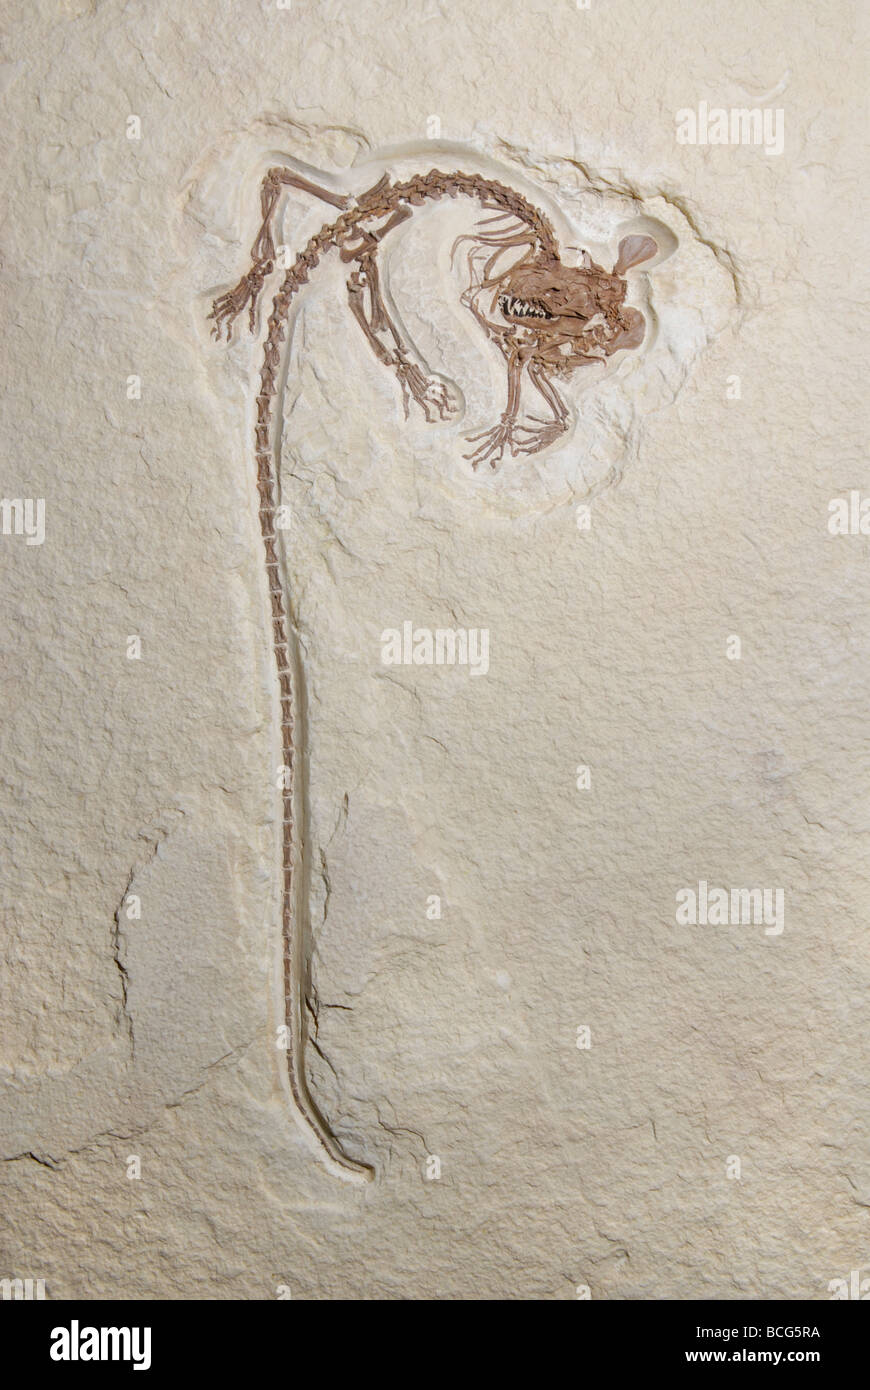 Mammal Fossil Stock Photos & Mammal Fossil Stock Images - Alamy